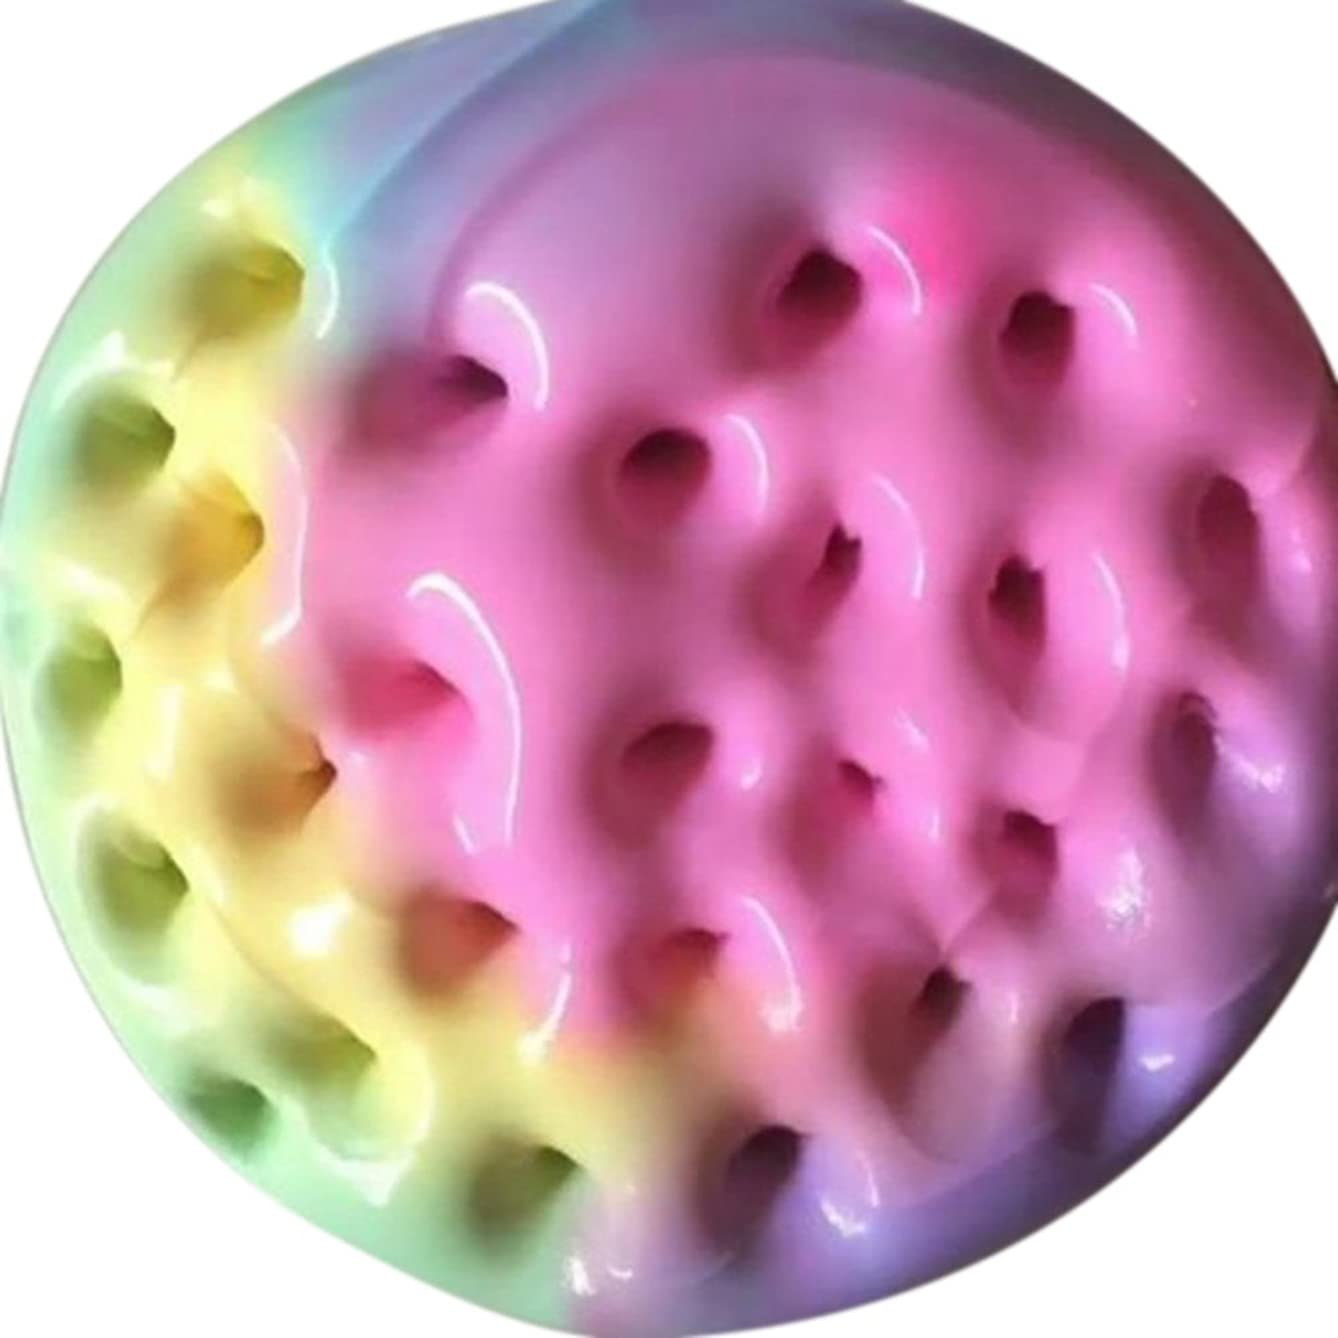 Clearance Sale!DEESEE(TM)????100ml Beautiful Mixing Fluffy Floam Slime Scented Stress Relief Kids Sludge Toy